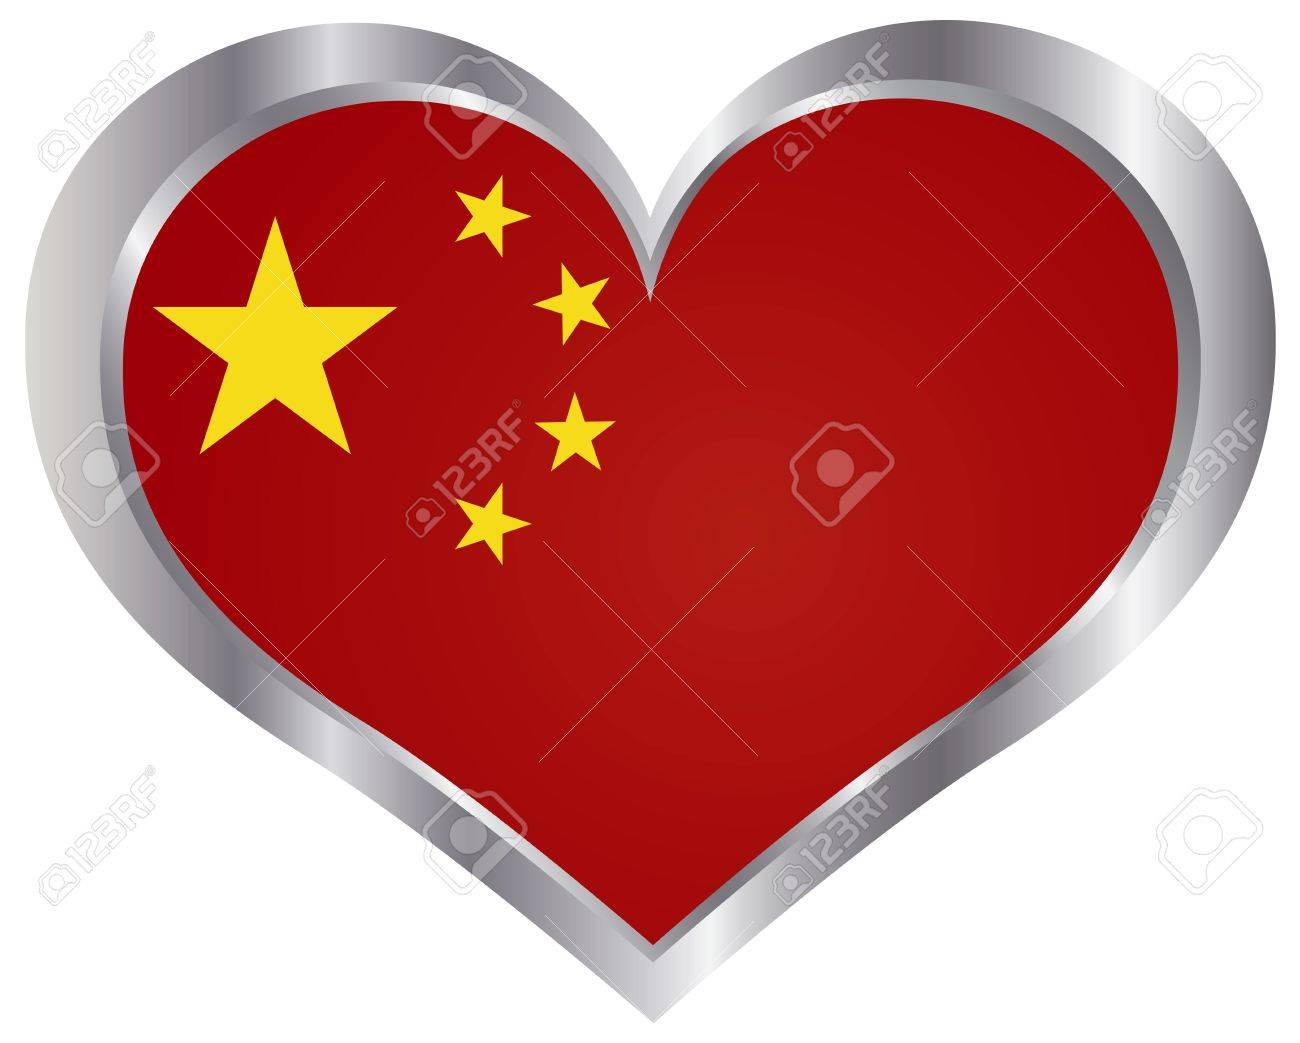 Peoples Republic of China Flag in Heart Shape Silhouette Metal Frame Background Illustration Stock Vector - 19293386